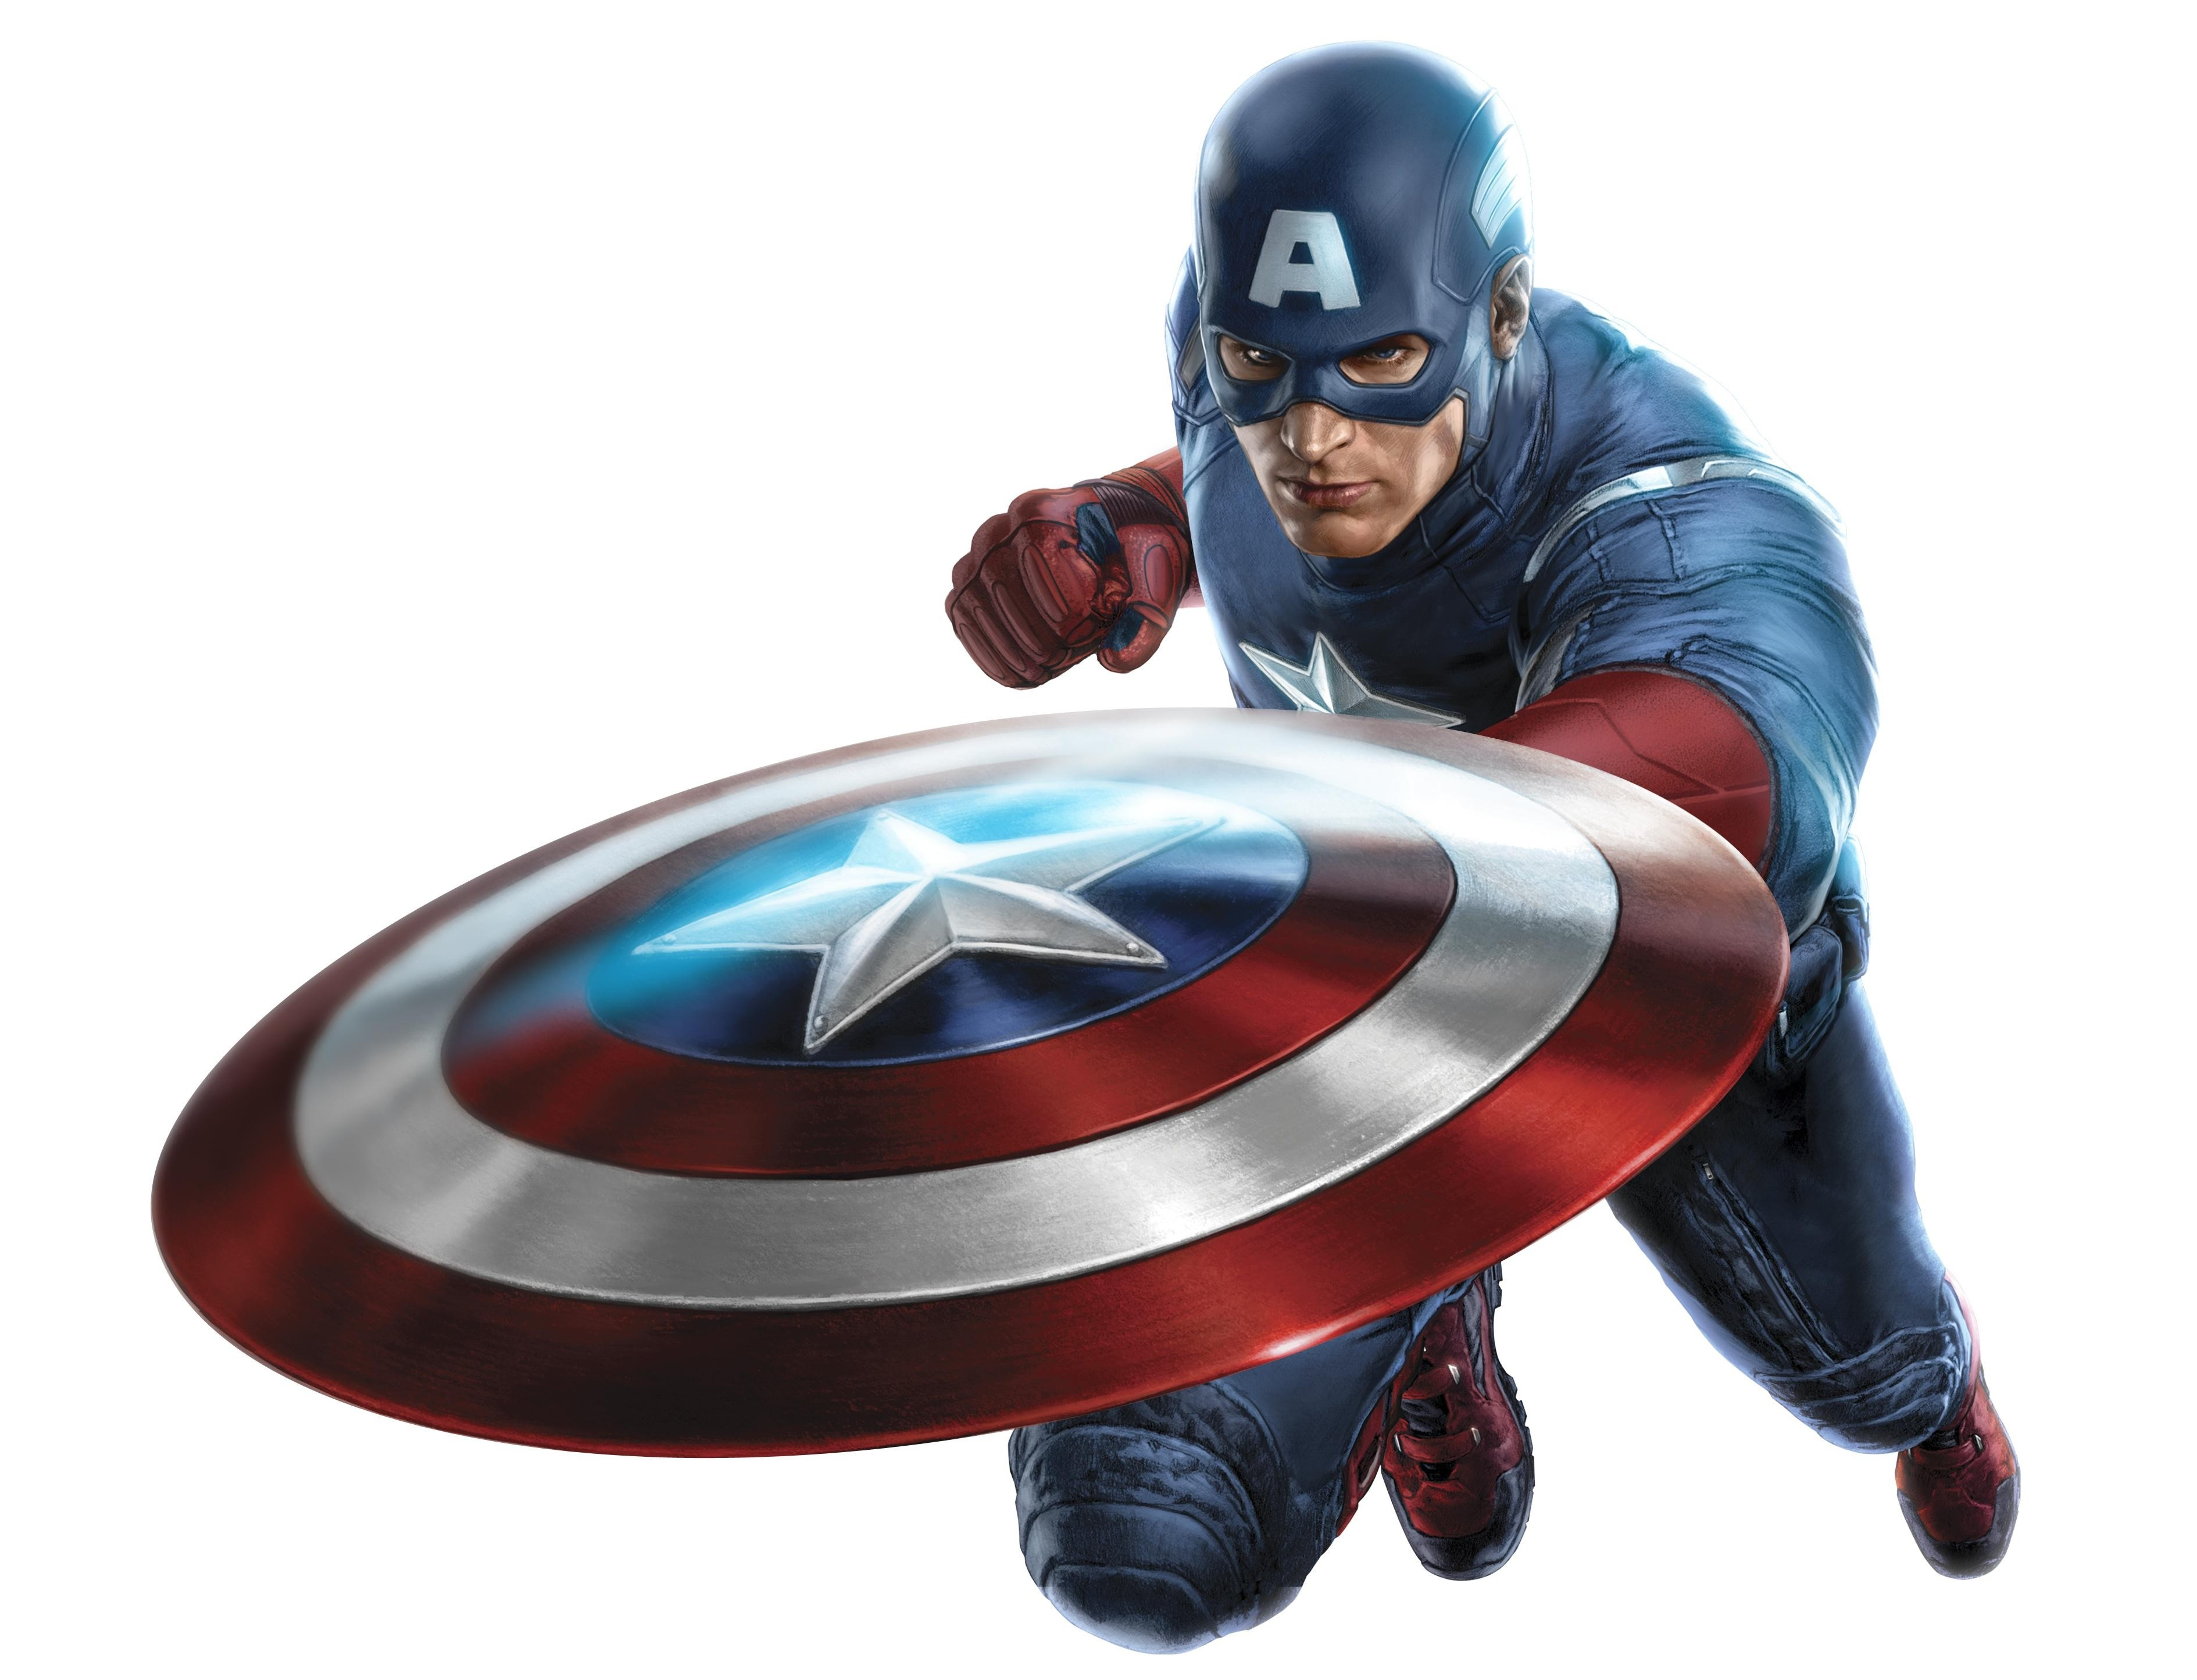 CaptainAmerica4-Avengers.png - Captian America HD PNG